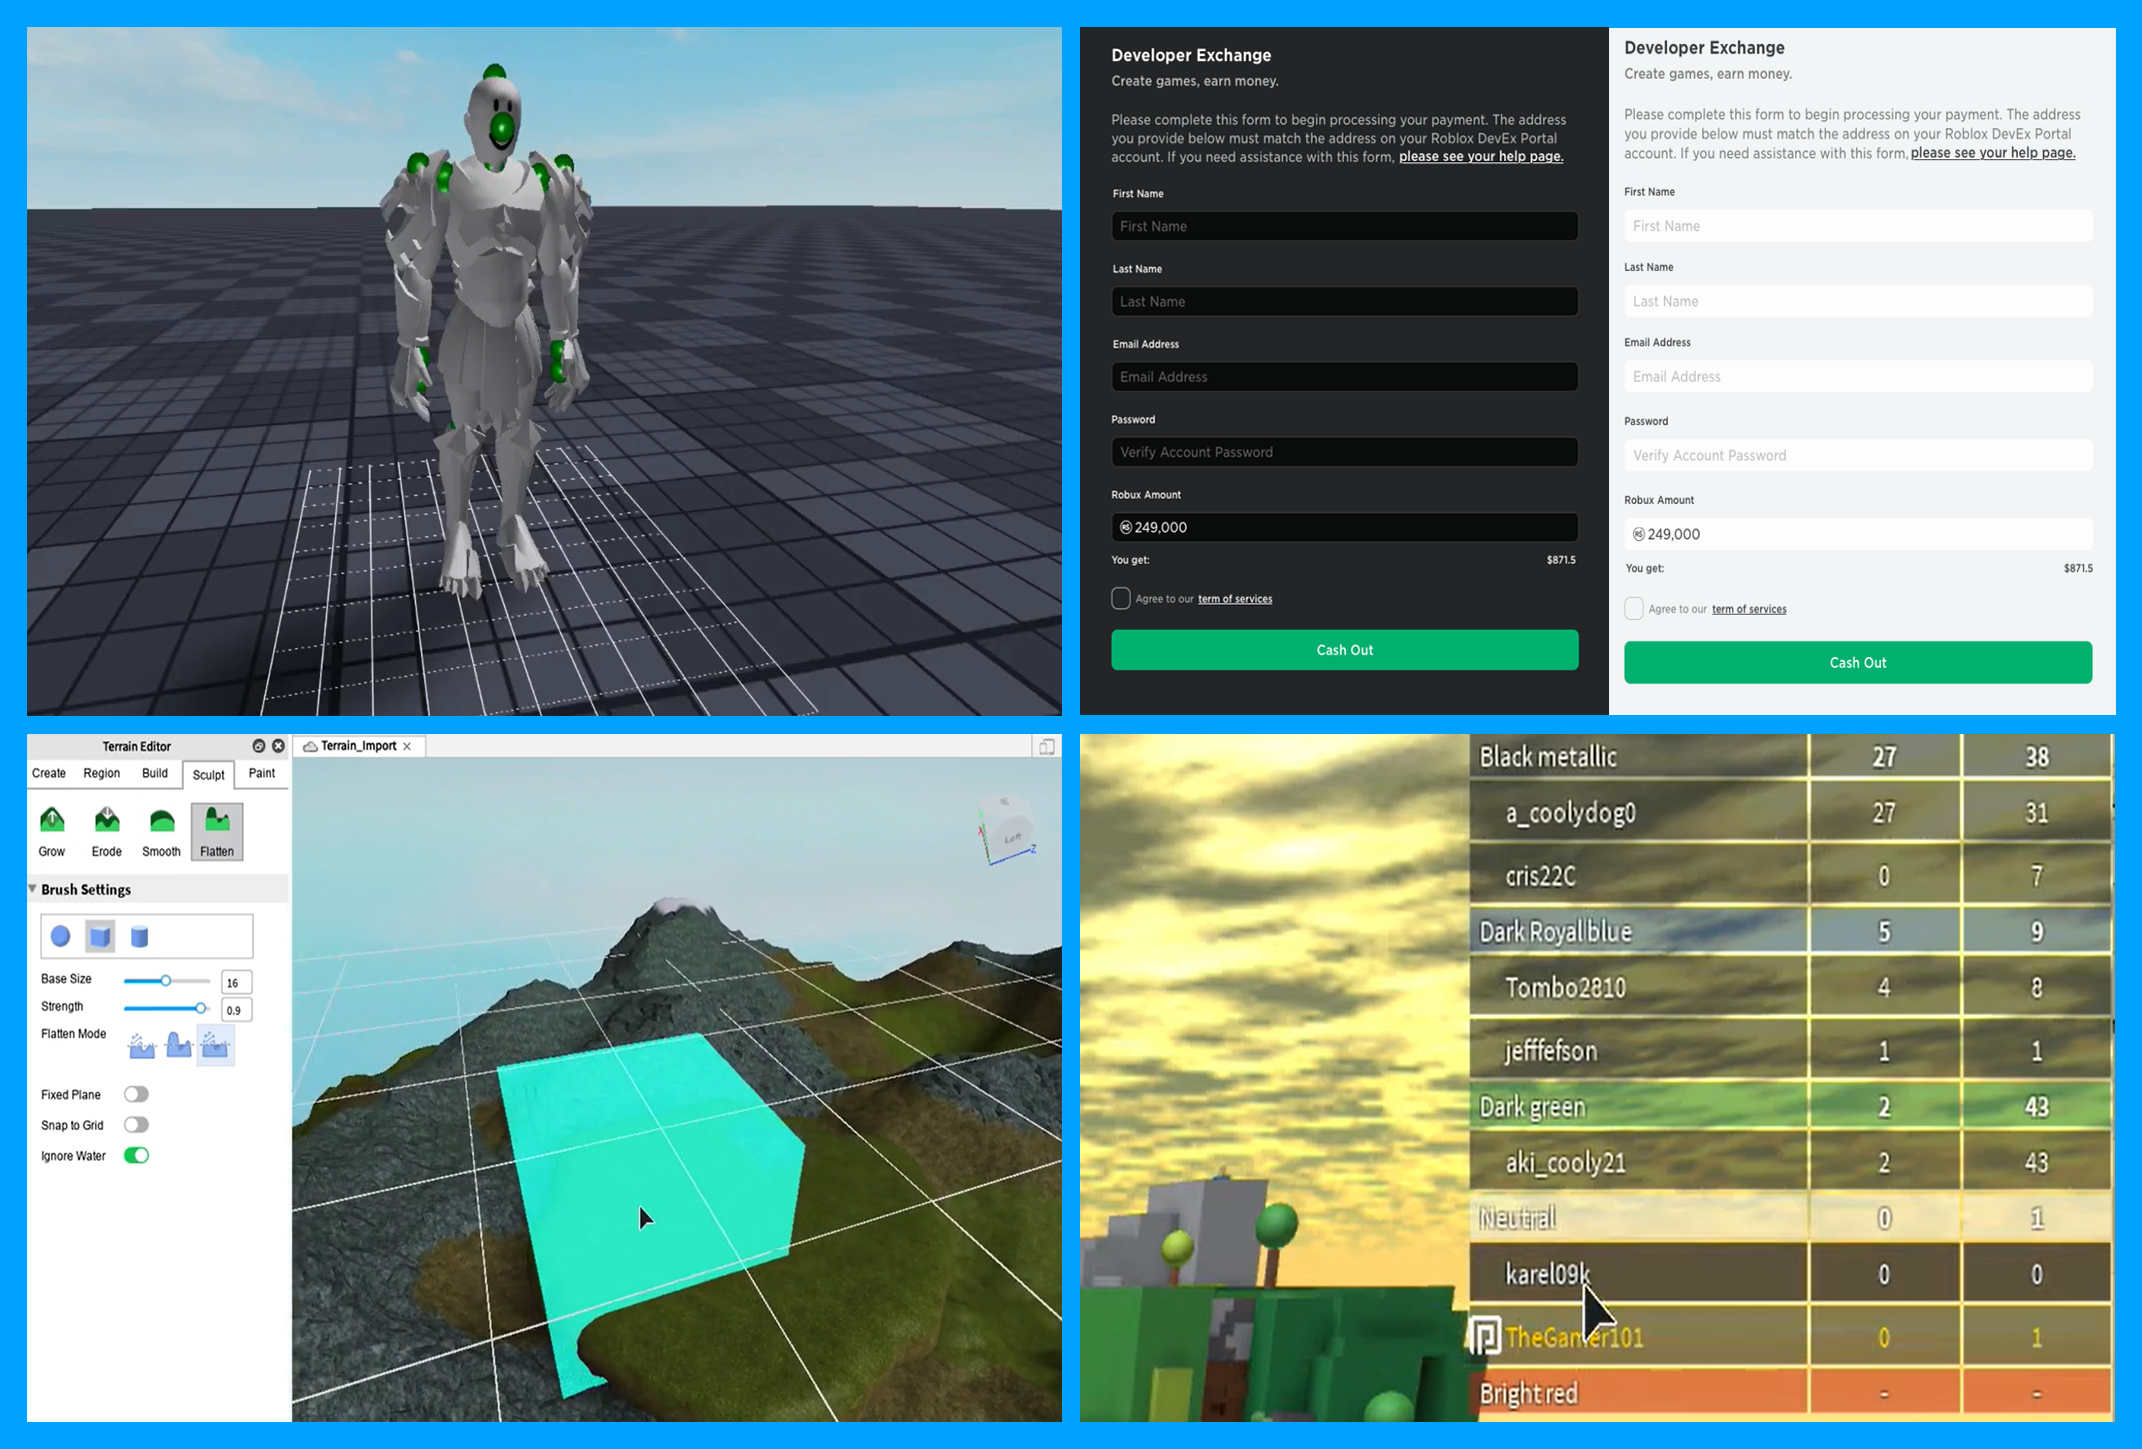 Roblox Developer Hub Learn How To Create Games On The - roblox list of events 2018 developer forms